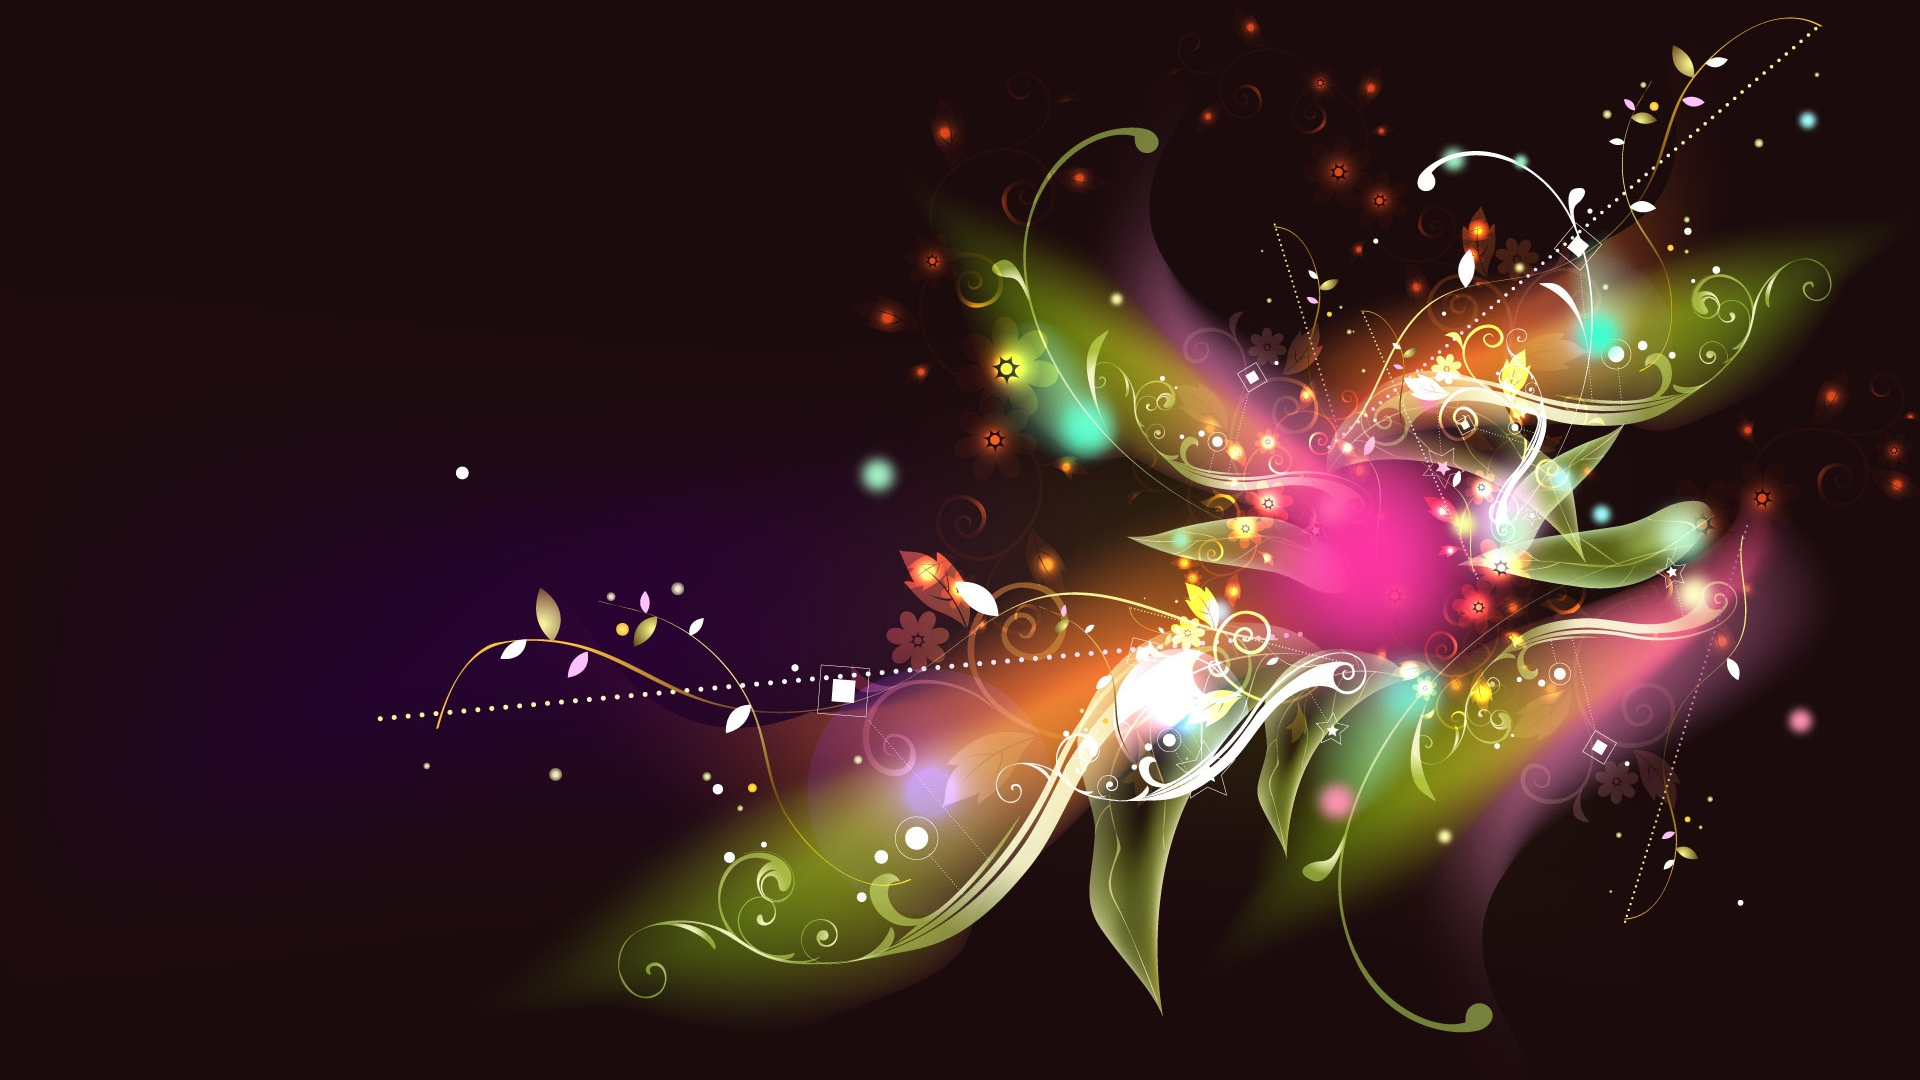 Get The Latest Abstract Flower Glitter News Pictures And Videos Learn All About From Wallpapers4uorg Your Wallpaper